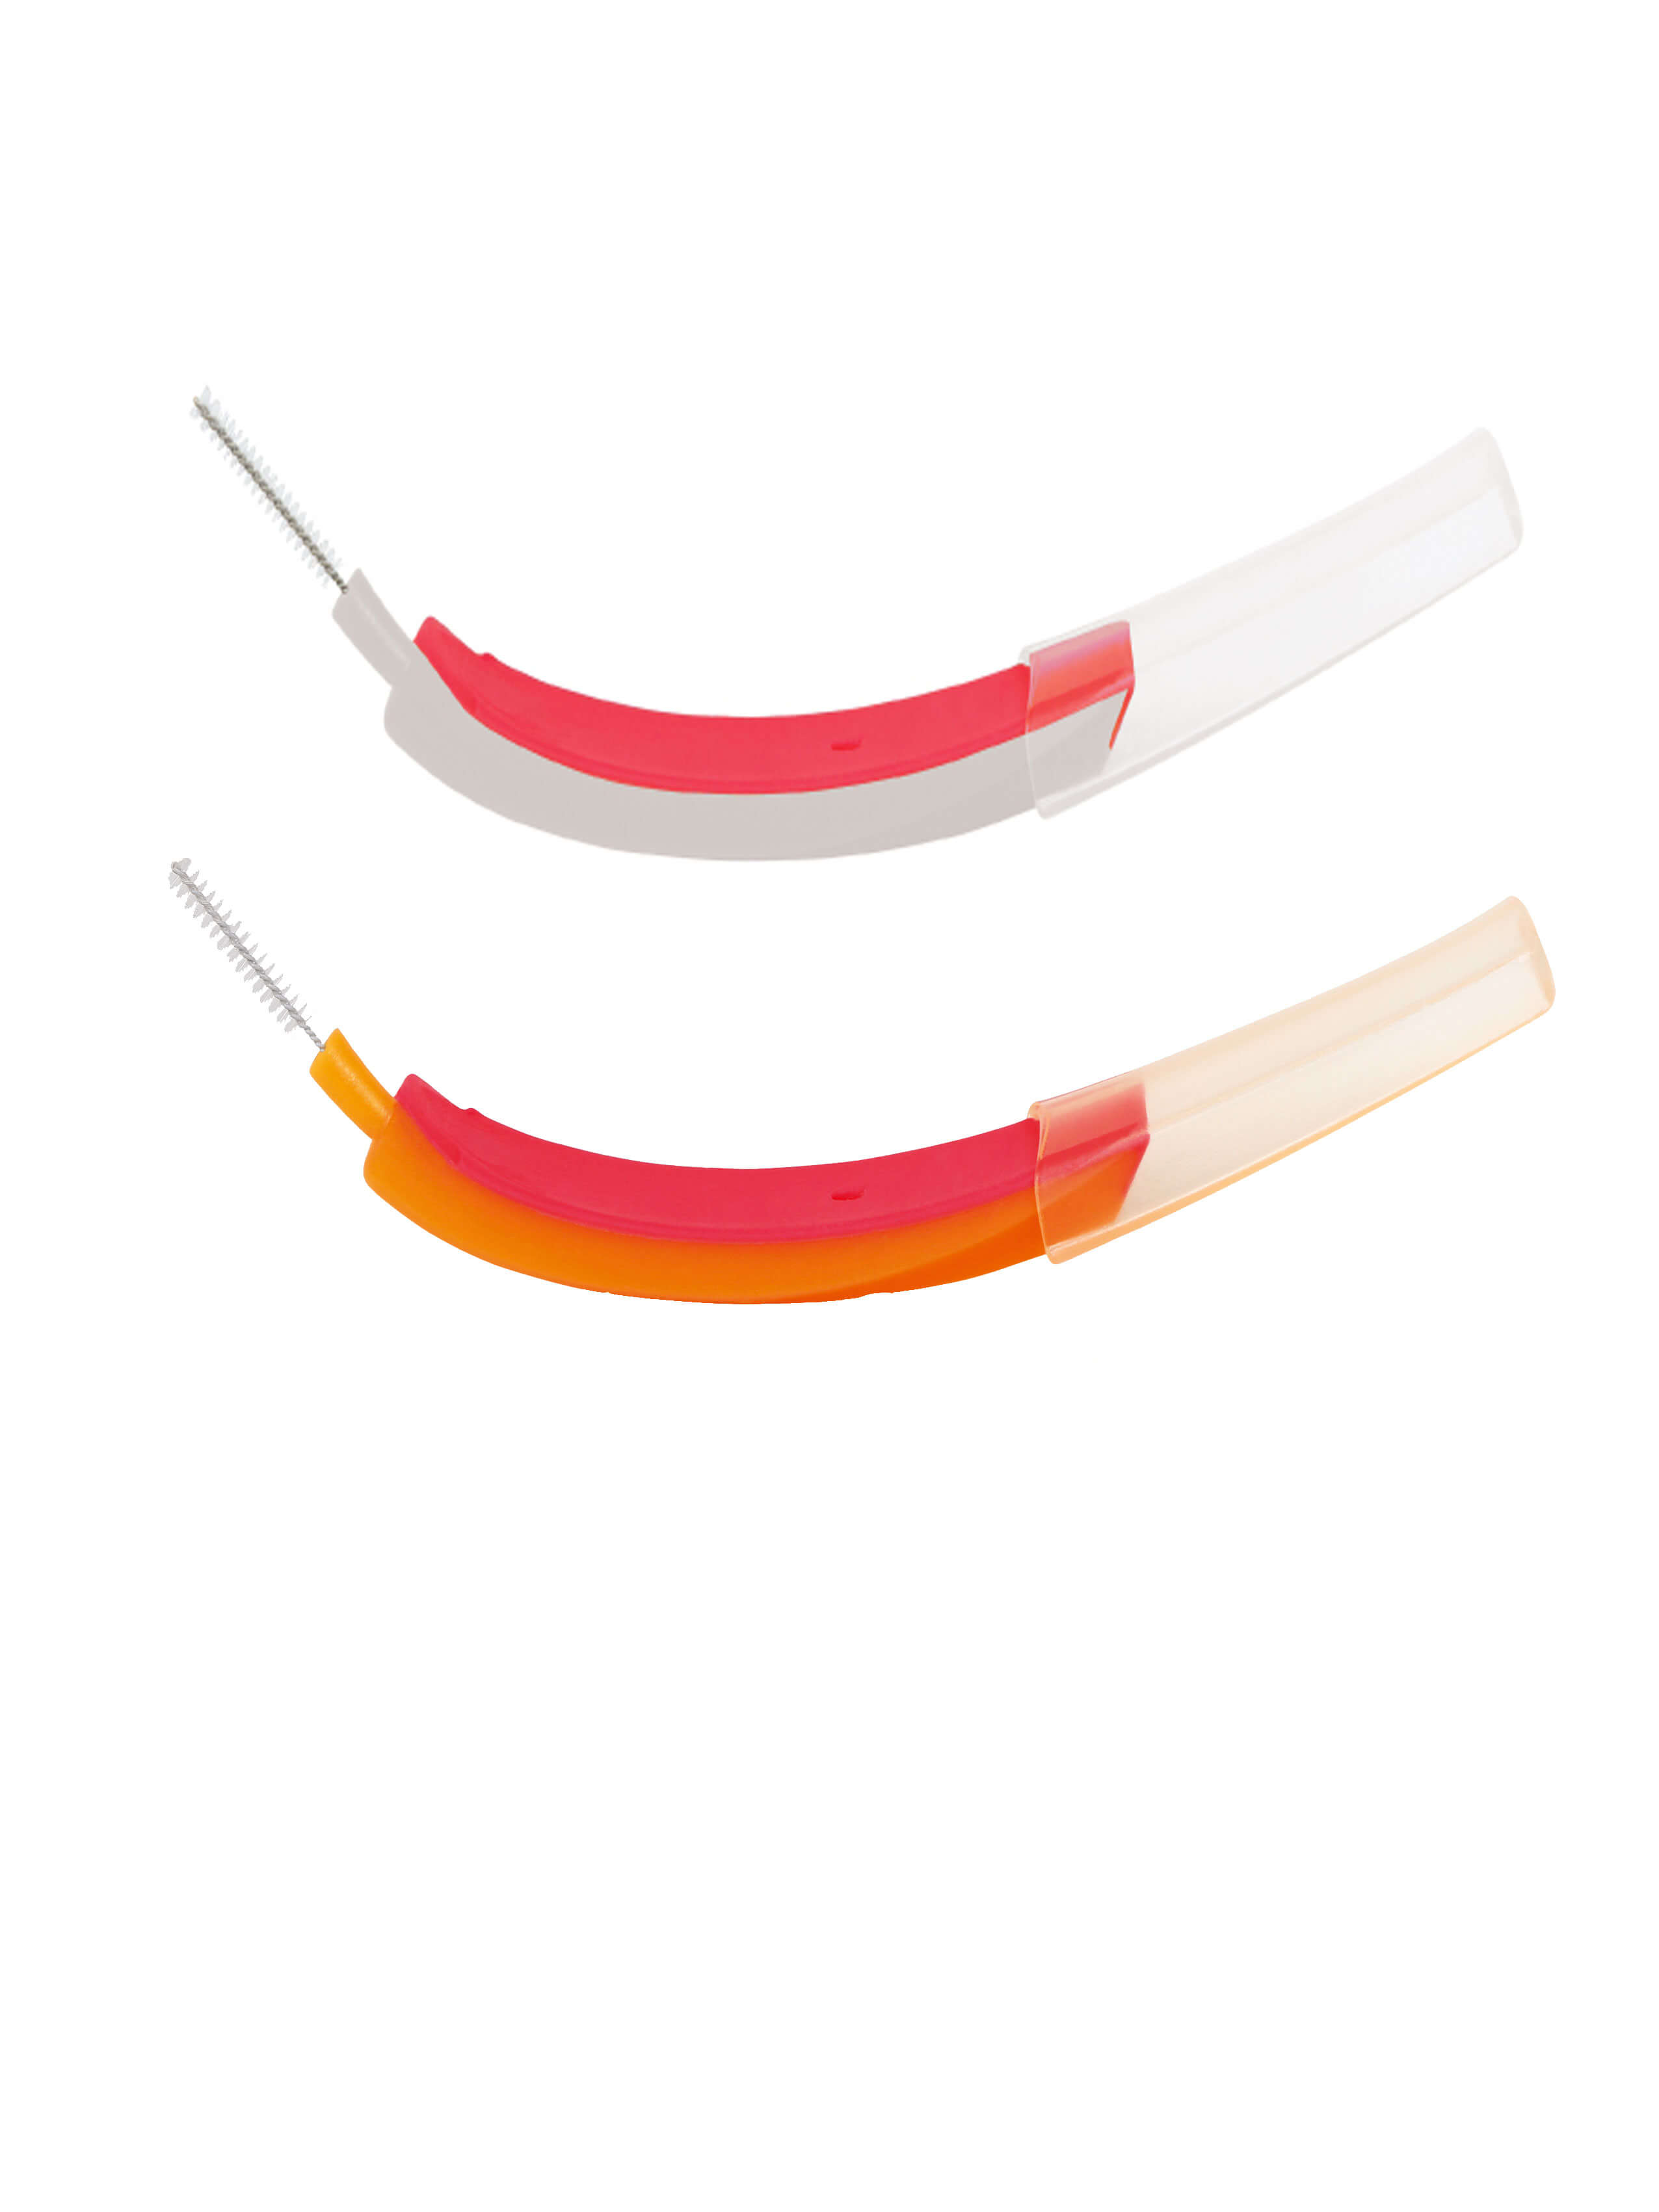 edel + white Interdental M 0,7 mm